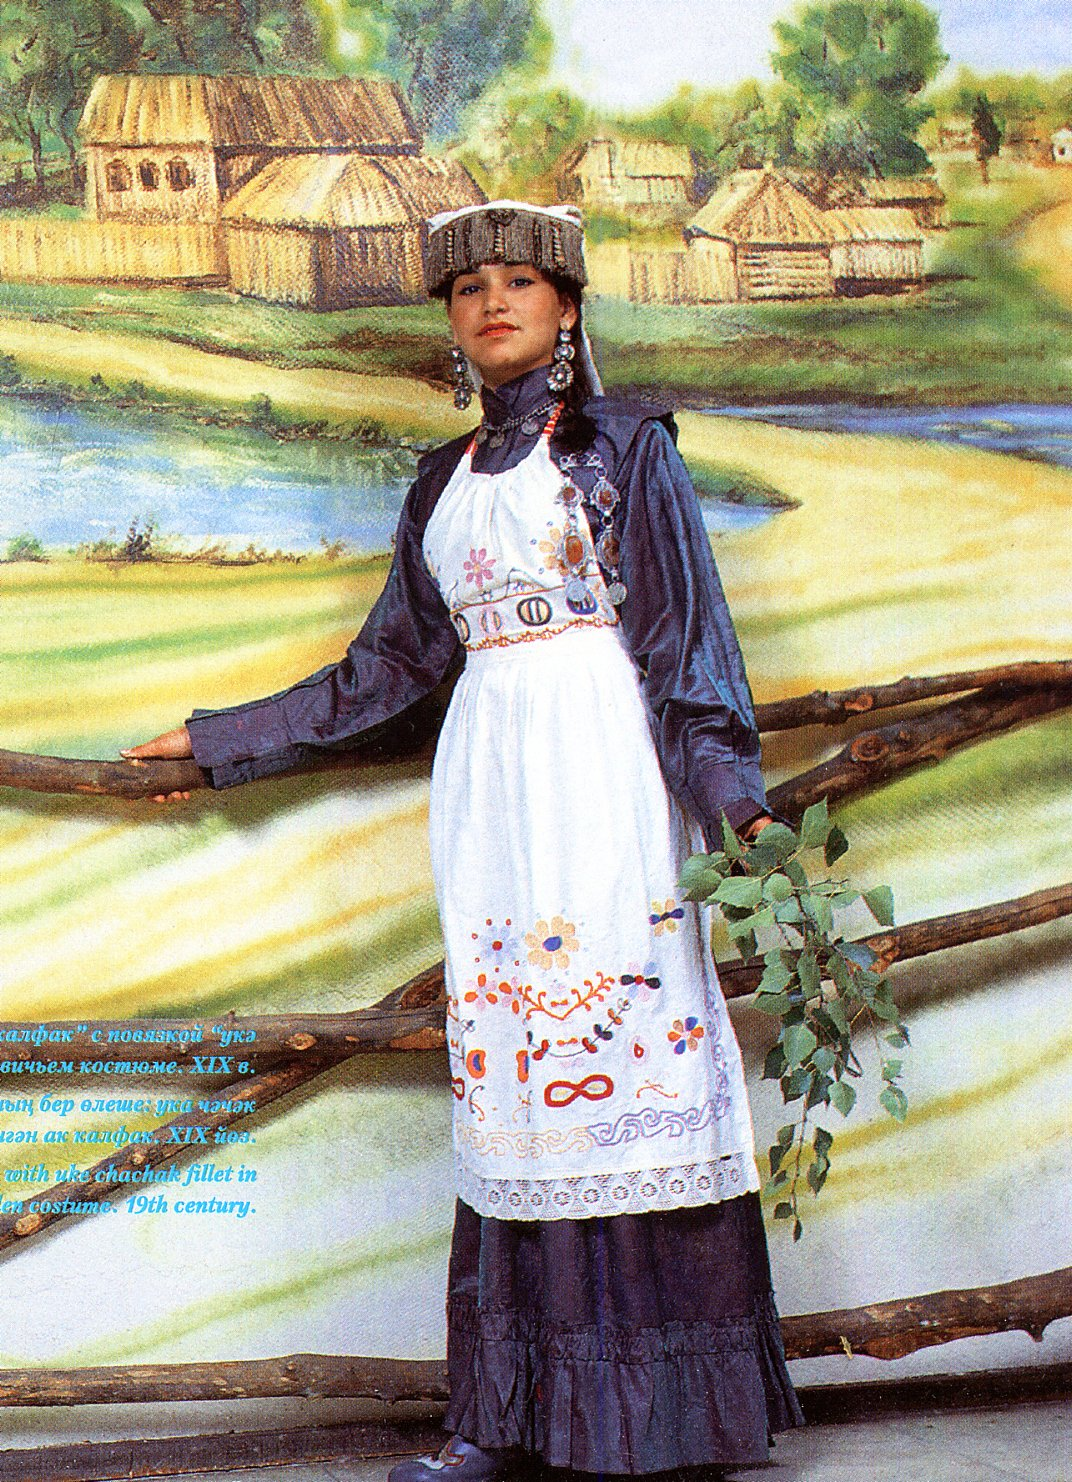 Charro Wedding Dresses http://folkcostume.blogspot.com/2011/05/village-costume-of-tatarstan.html